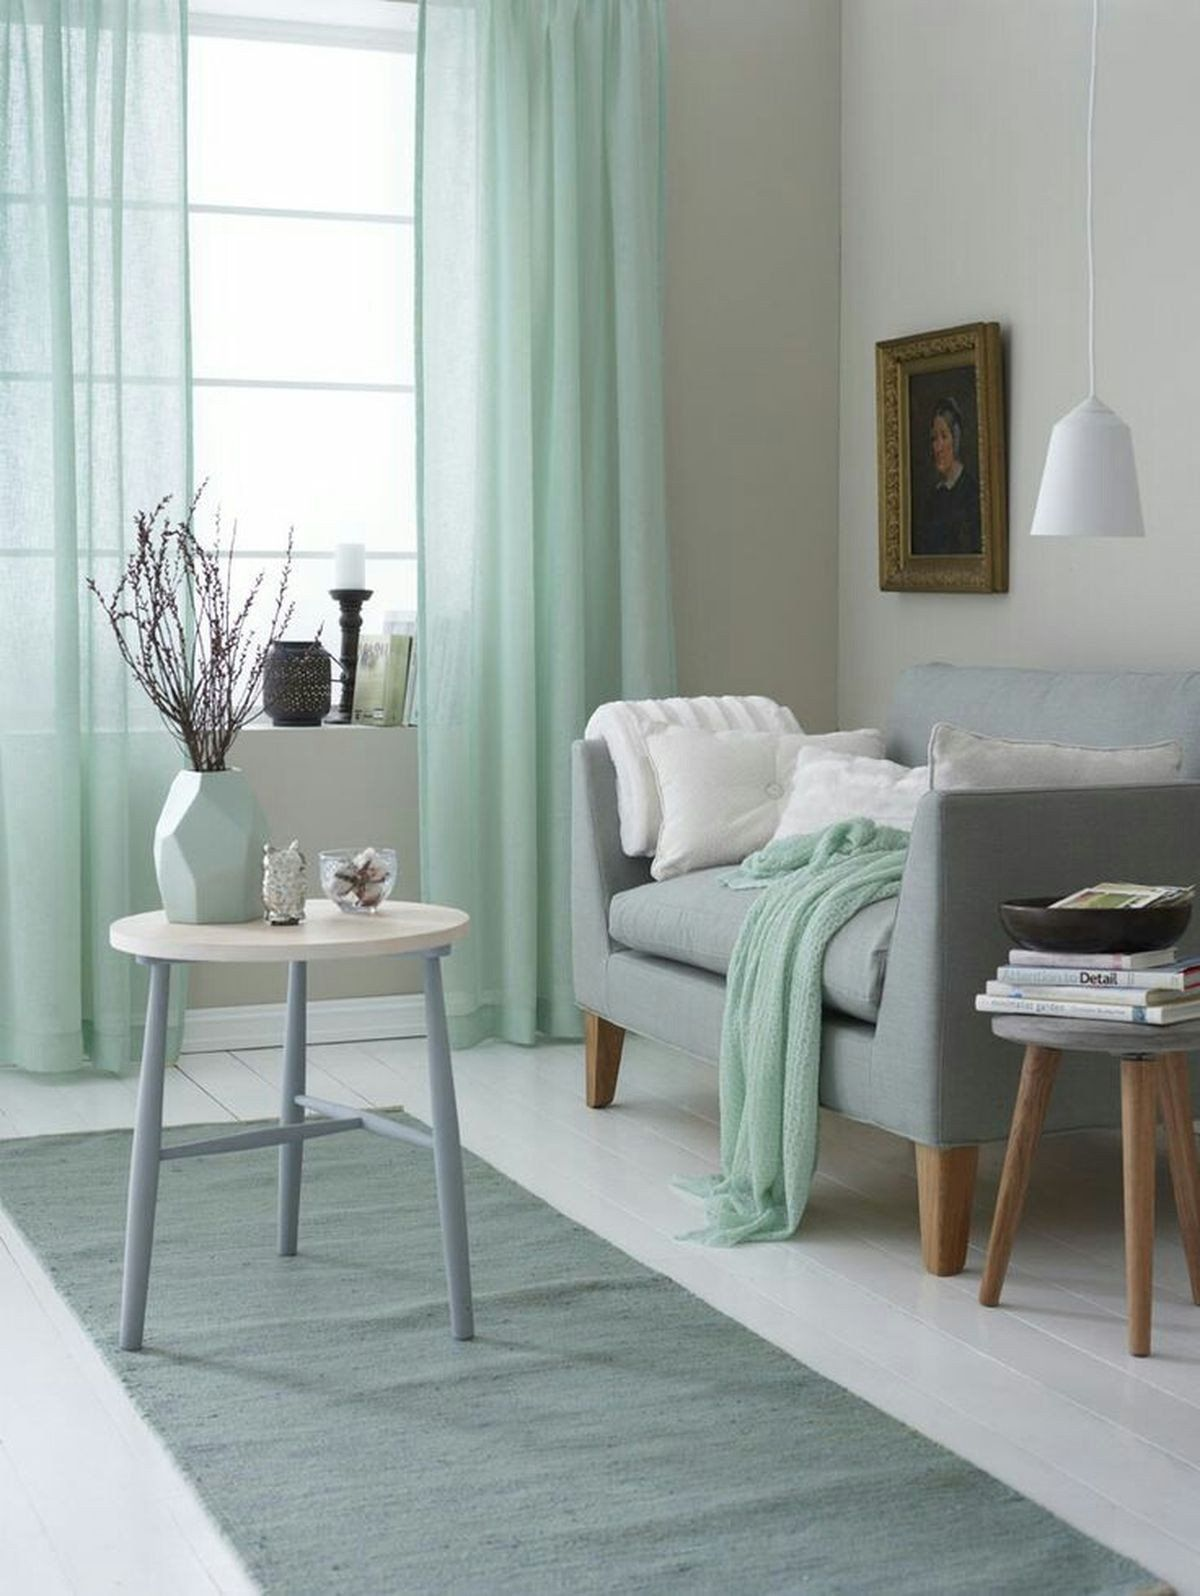 living room, white wooden floor, grey rug, green curtain, blue sofa, stools for table, white pendant